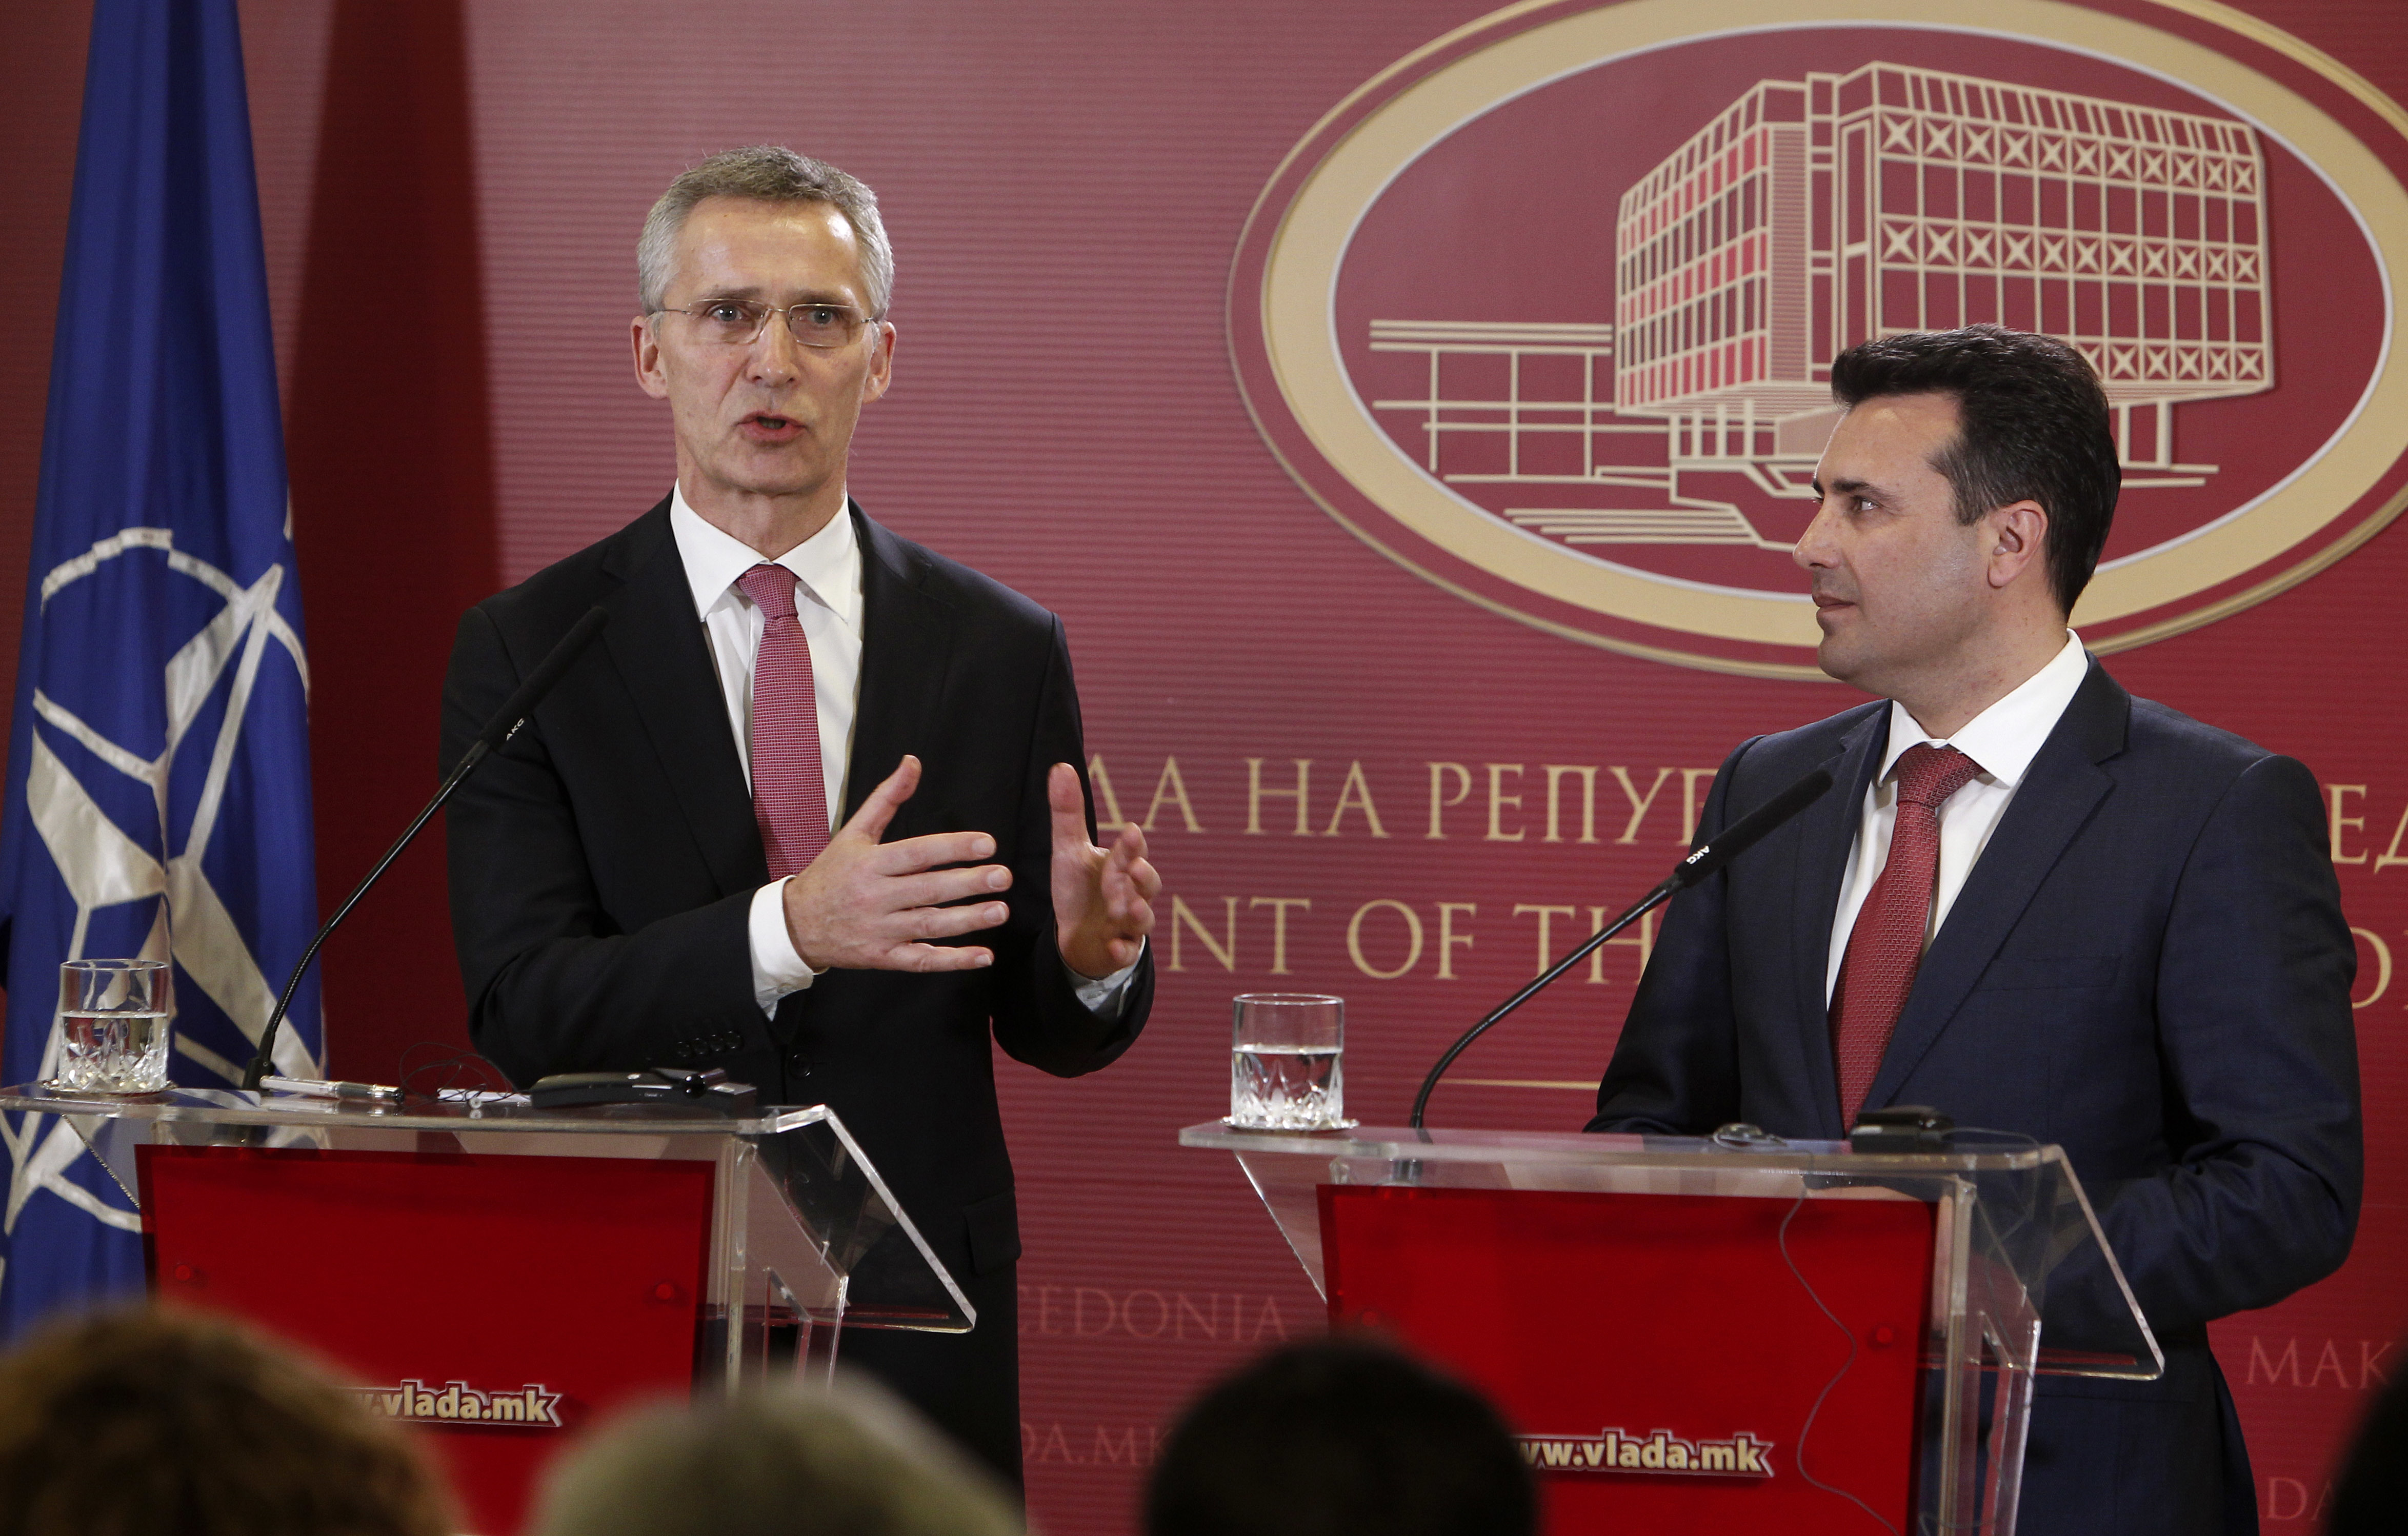 NATO Secretary General Jens Stoltenberg, left, talks for the media during a news conference with Macedonian Prime Minister Zoran Zaev, right, following their meeting at the Government building in Skopje, Macedonia, Jan. 18, 2018.